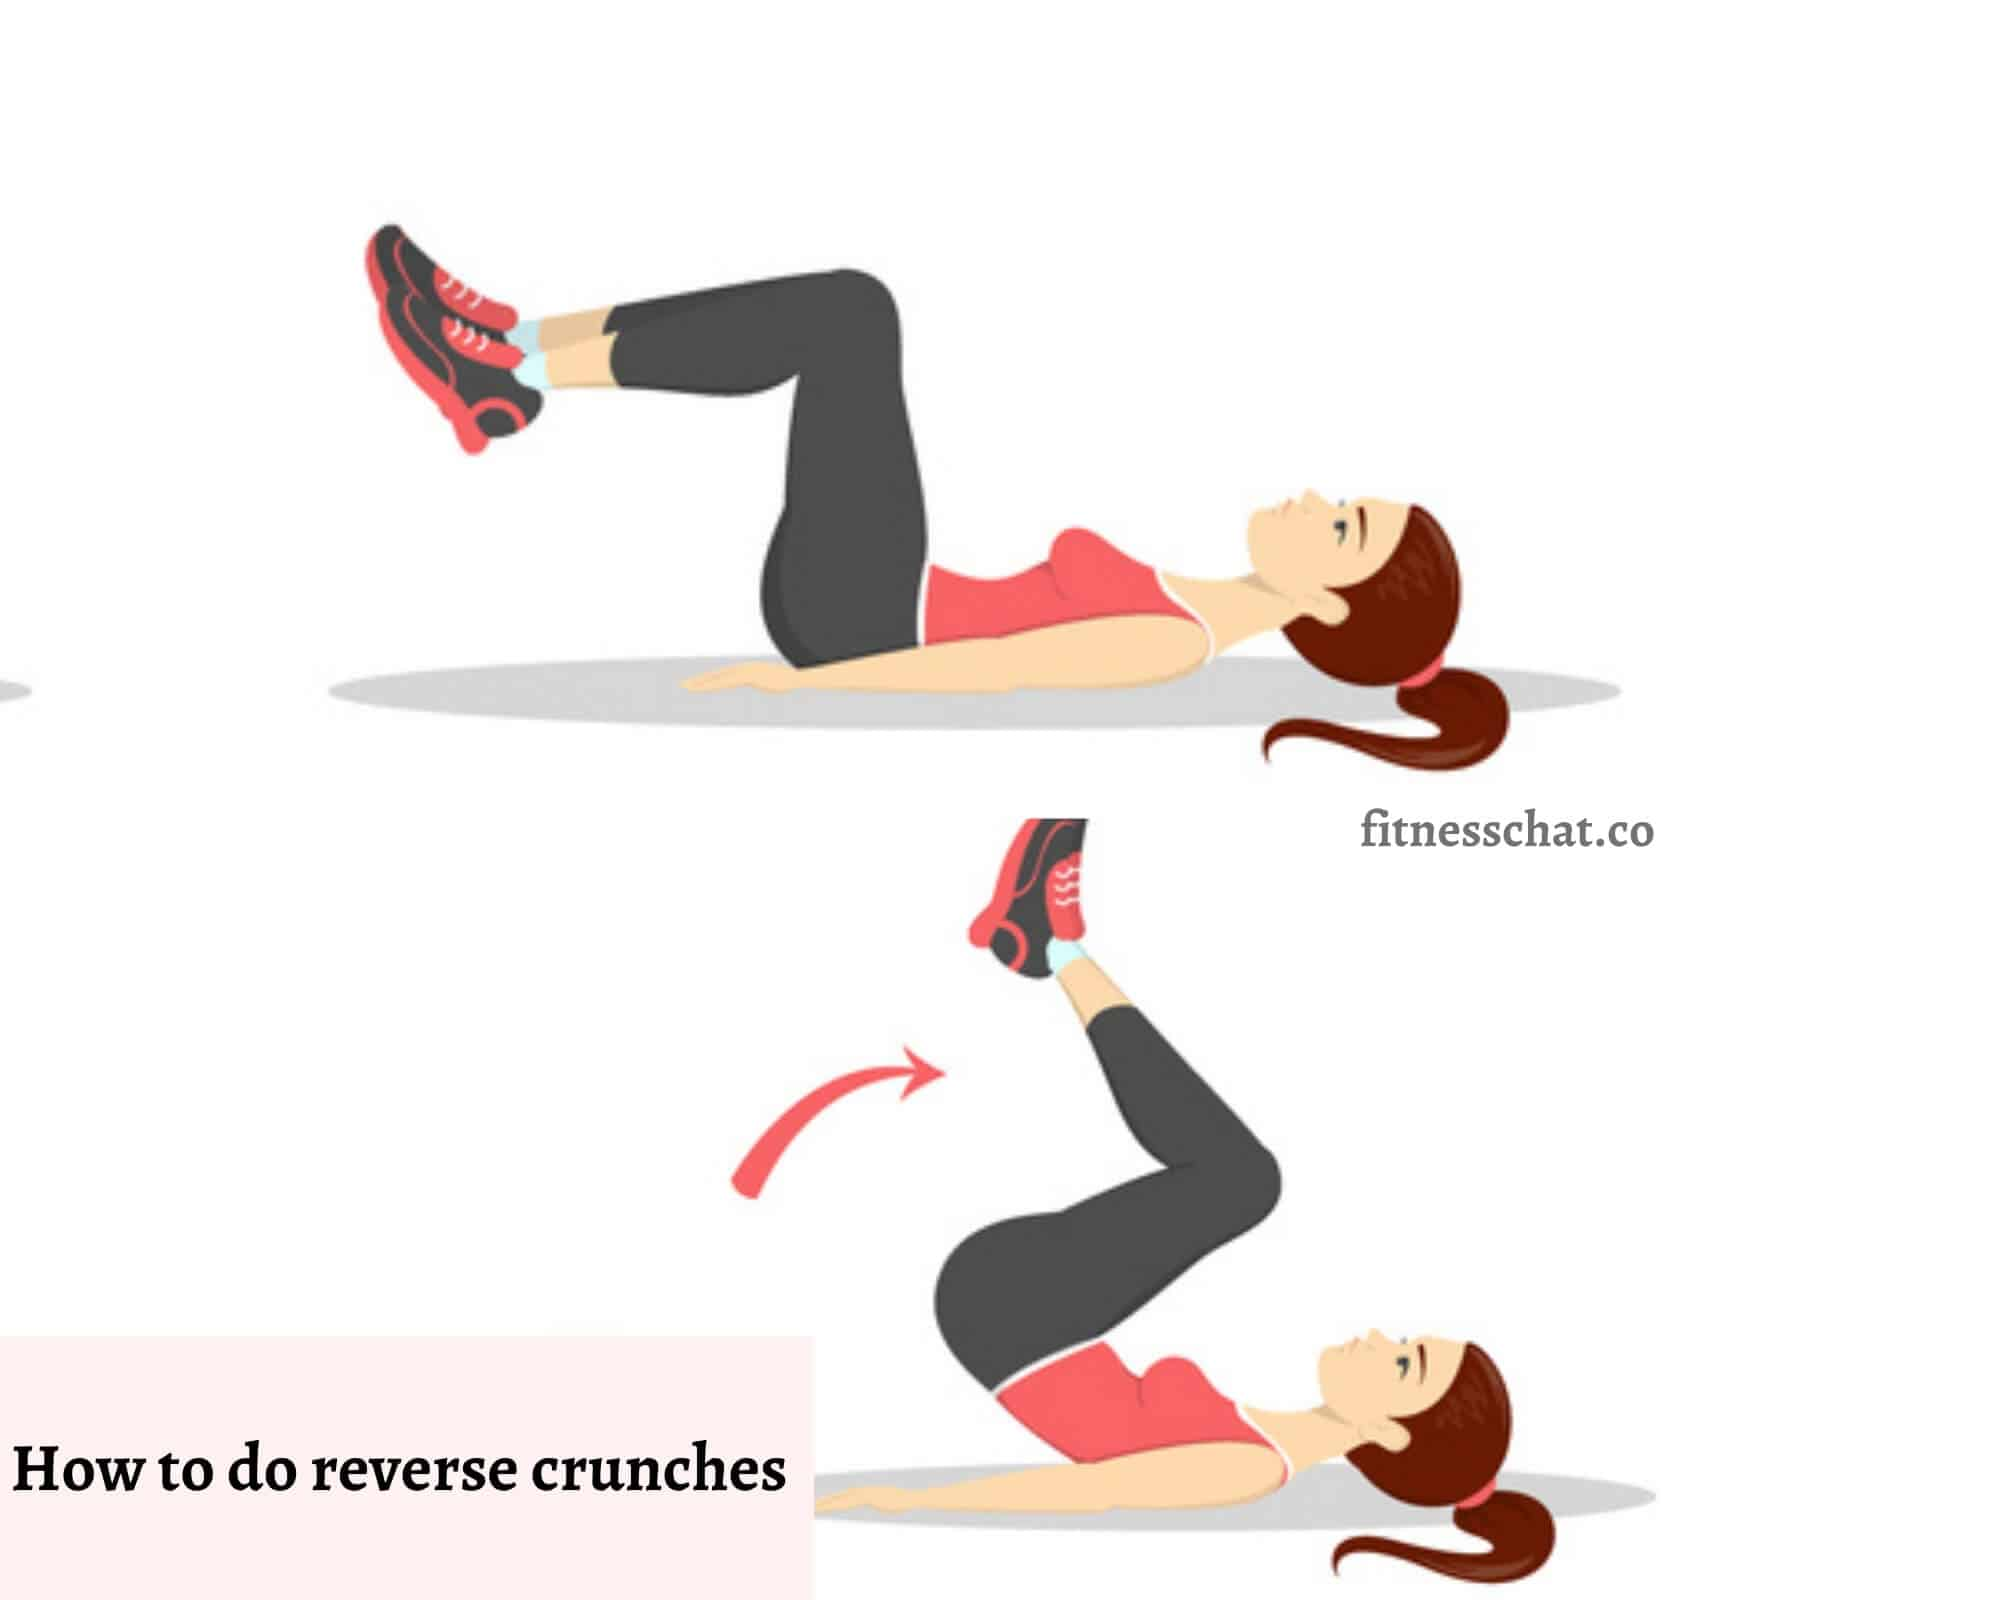 How to do reverse crunches